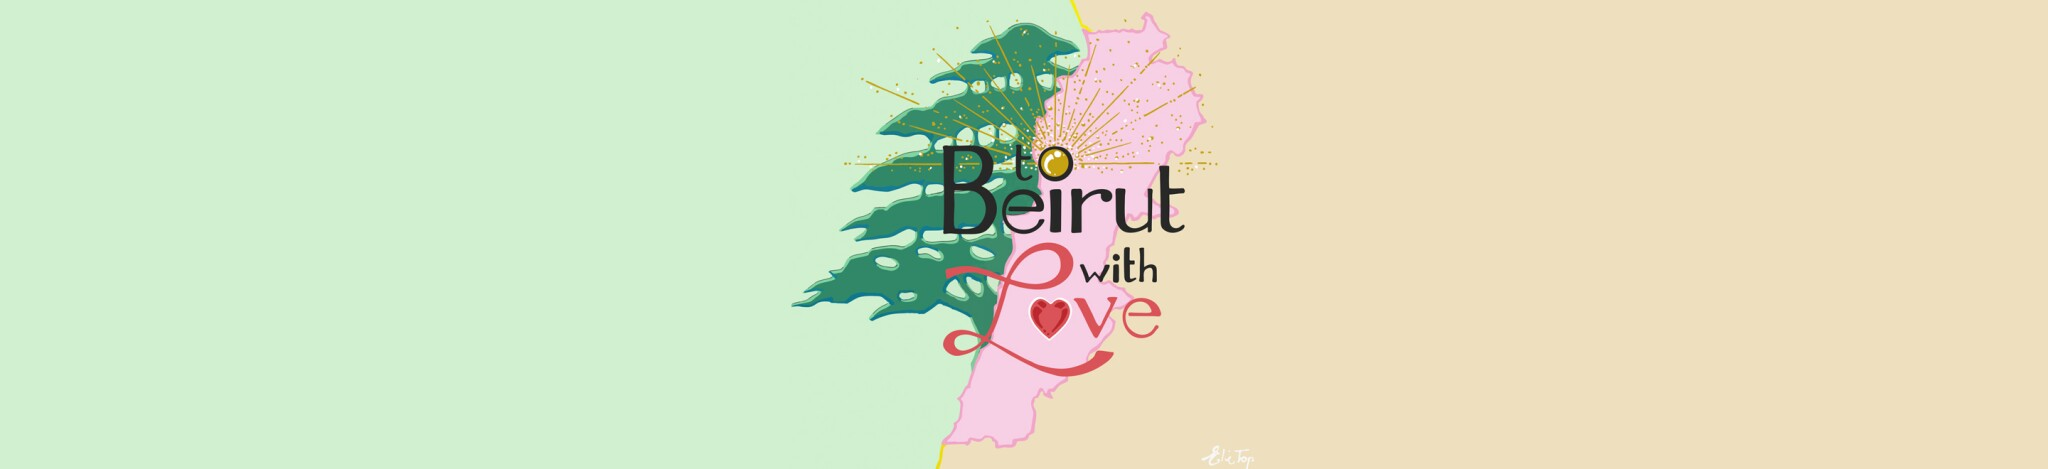 To Beirut with Love